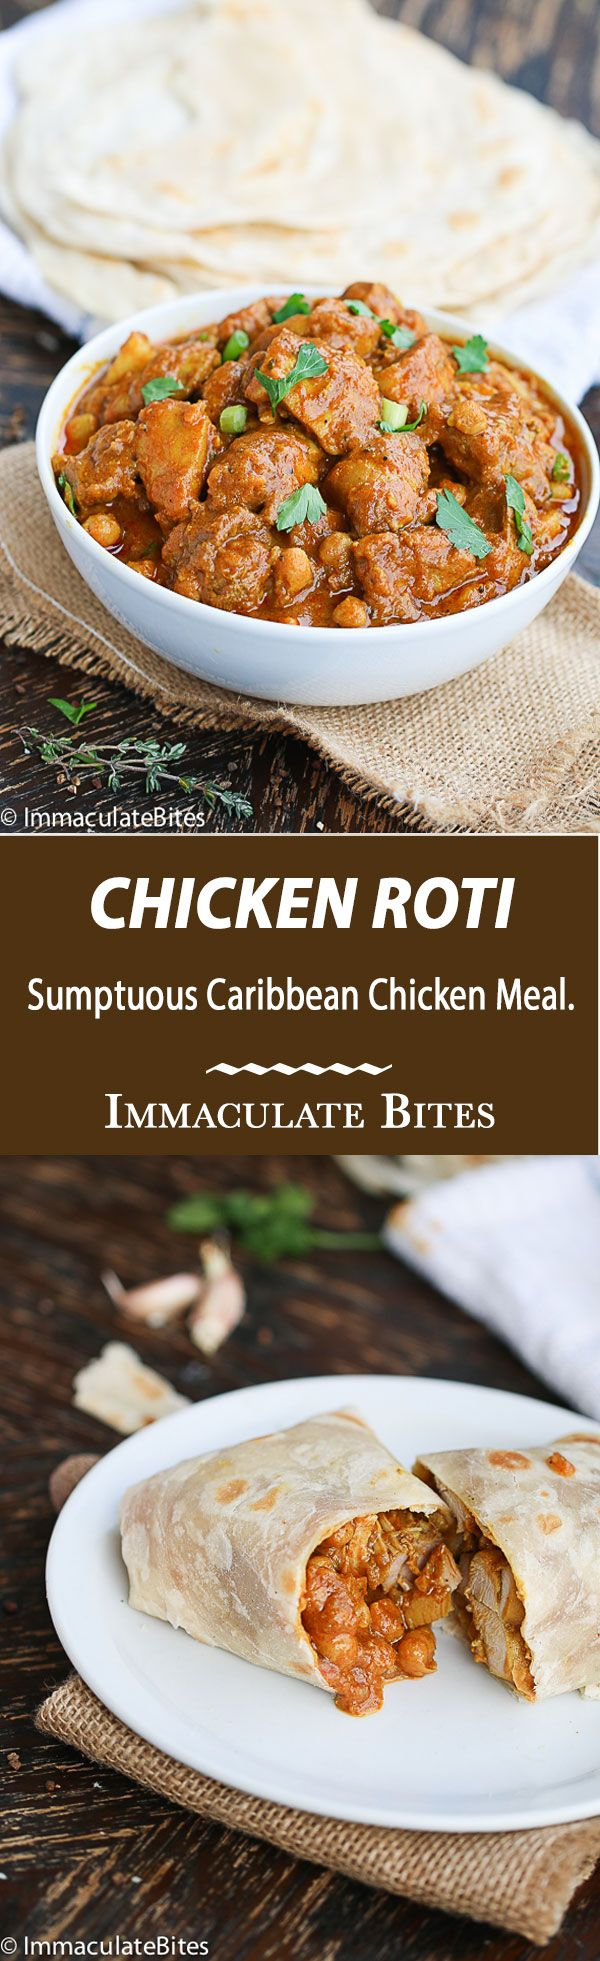 Trinidad Chicken Roti- An incredible Caribbean(tobago,Guyana) chicken meal that would excite your taste buds. Rich in spices, chickpeas and potato-So easy to make and comes together quickly.